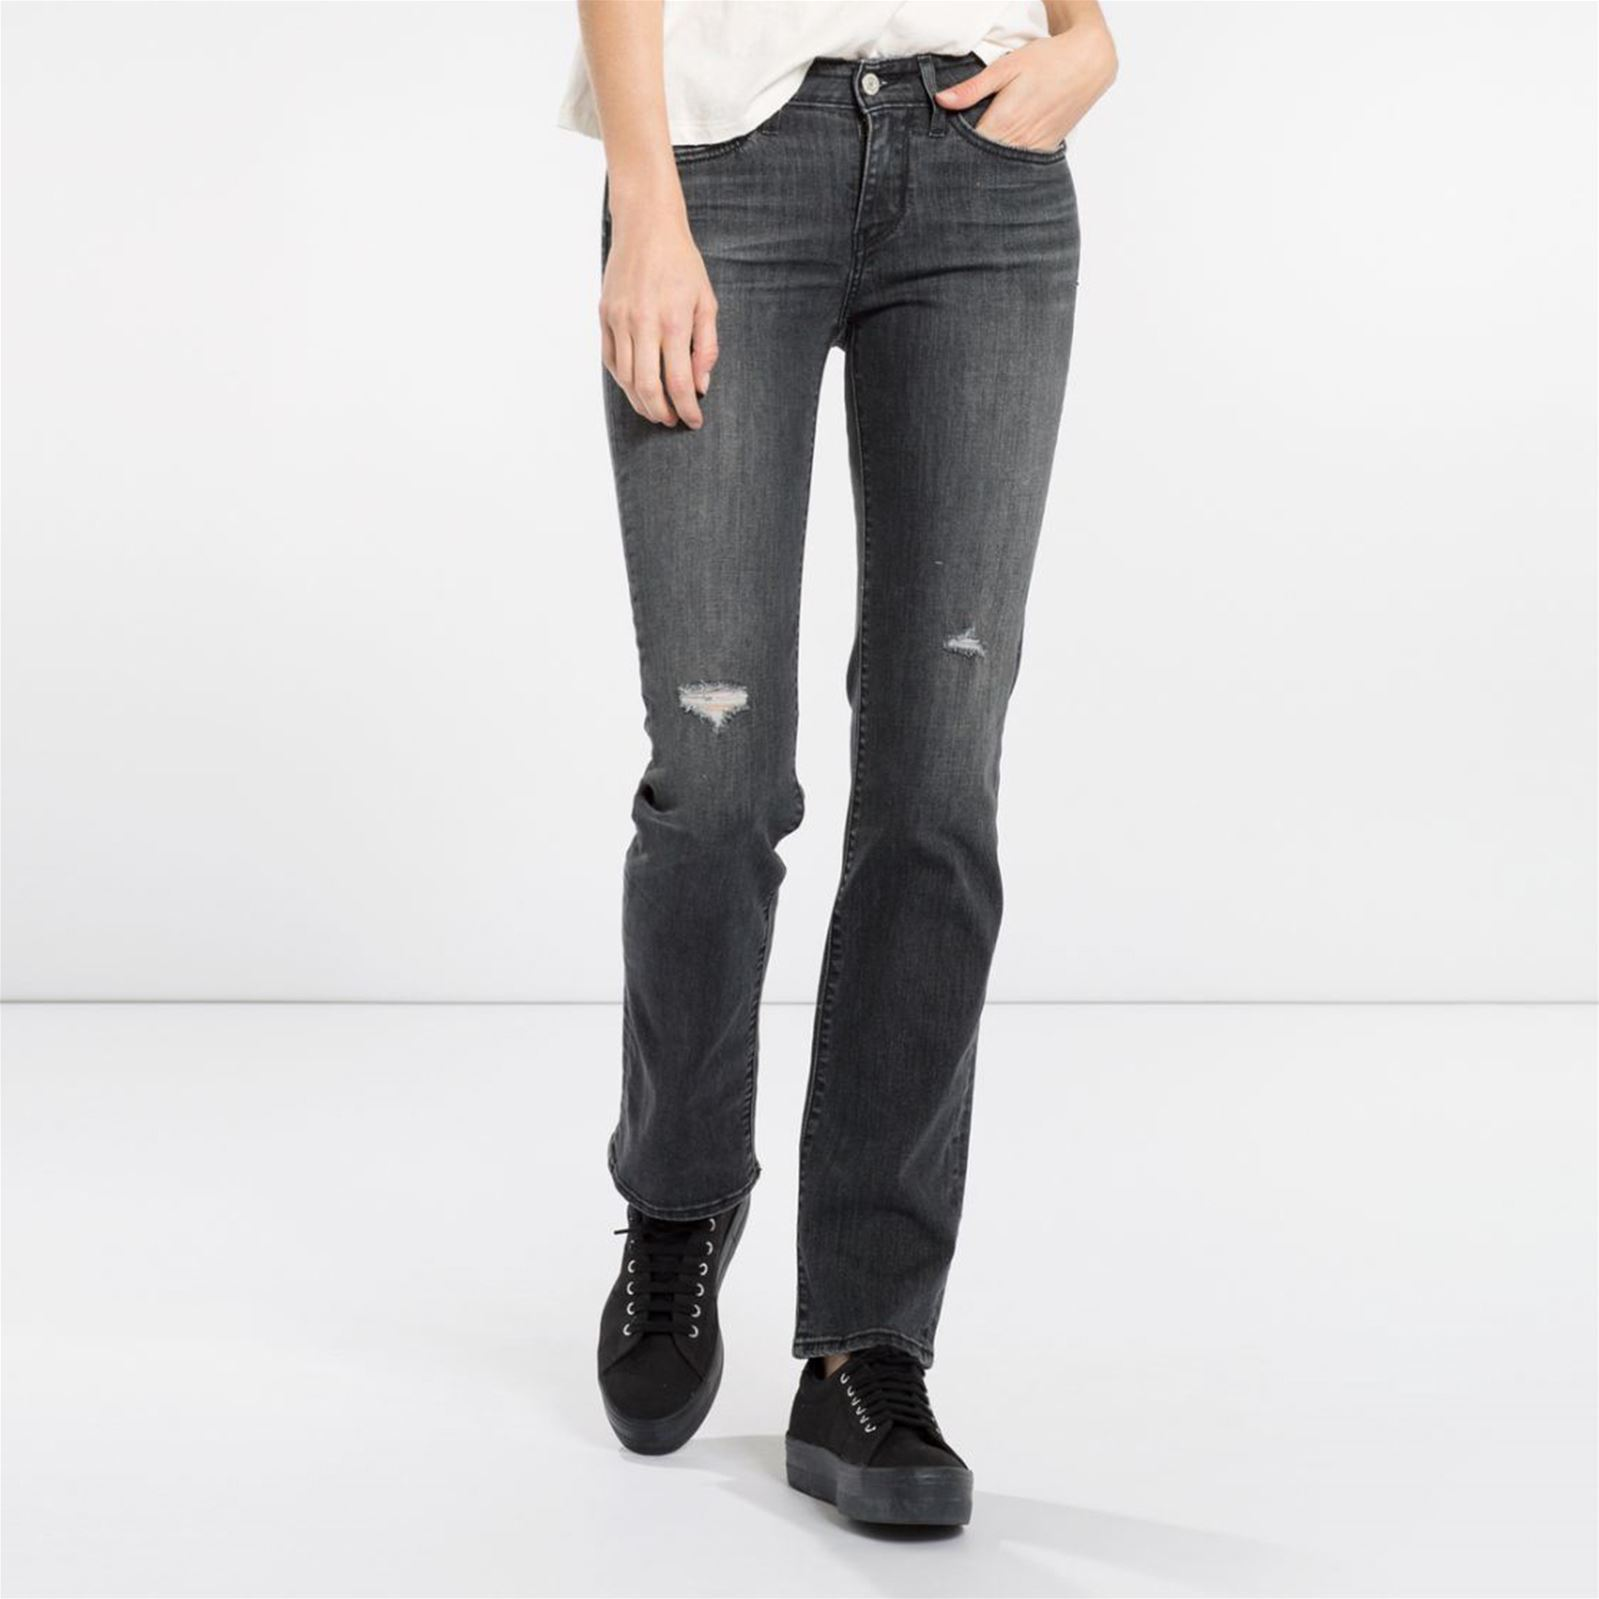 Levis 714 Straight Monday Morning  Skinny  Gris Foncé